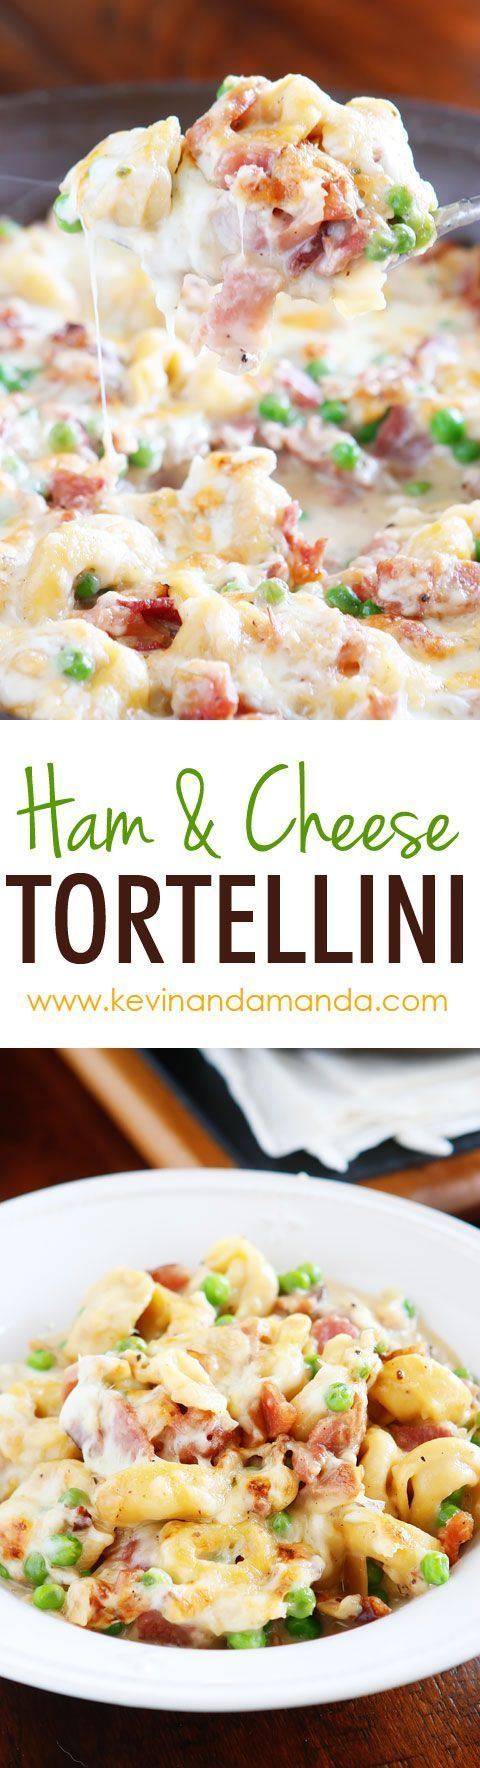 A whole meal in one pan! This Ham & Cheese Tortellini is creamy, cheesy, deliciousness in every bite! Make it in 15 minutes and everything cooks in one pan, so you only have one dish to wash. The perfect quick and easy weeknight dinner that everyone will  (Chicken Cordon Bleu Plating)